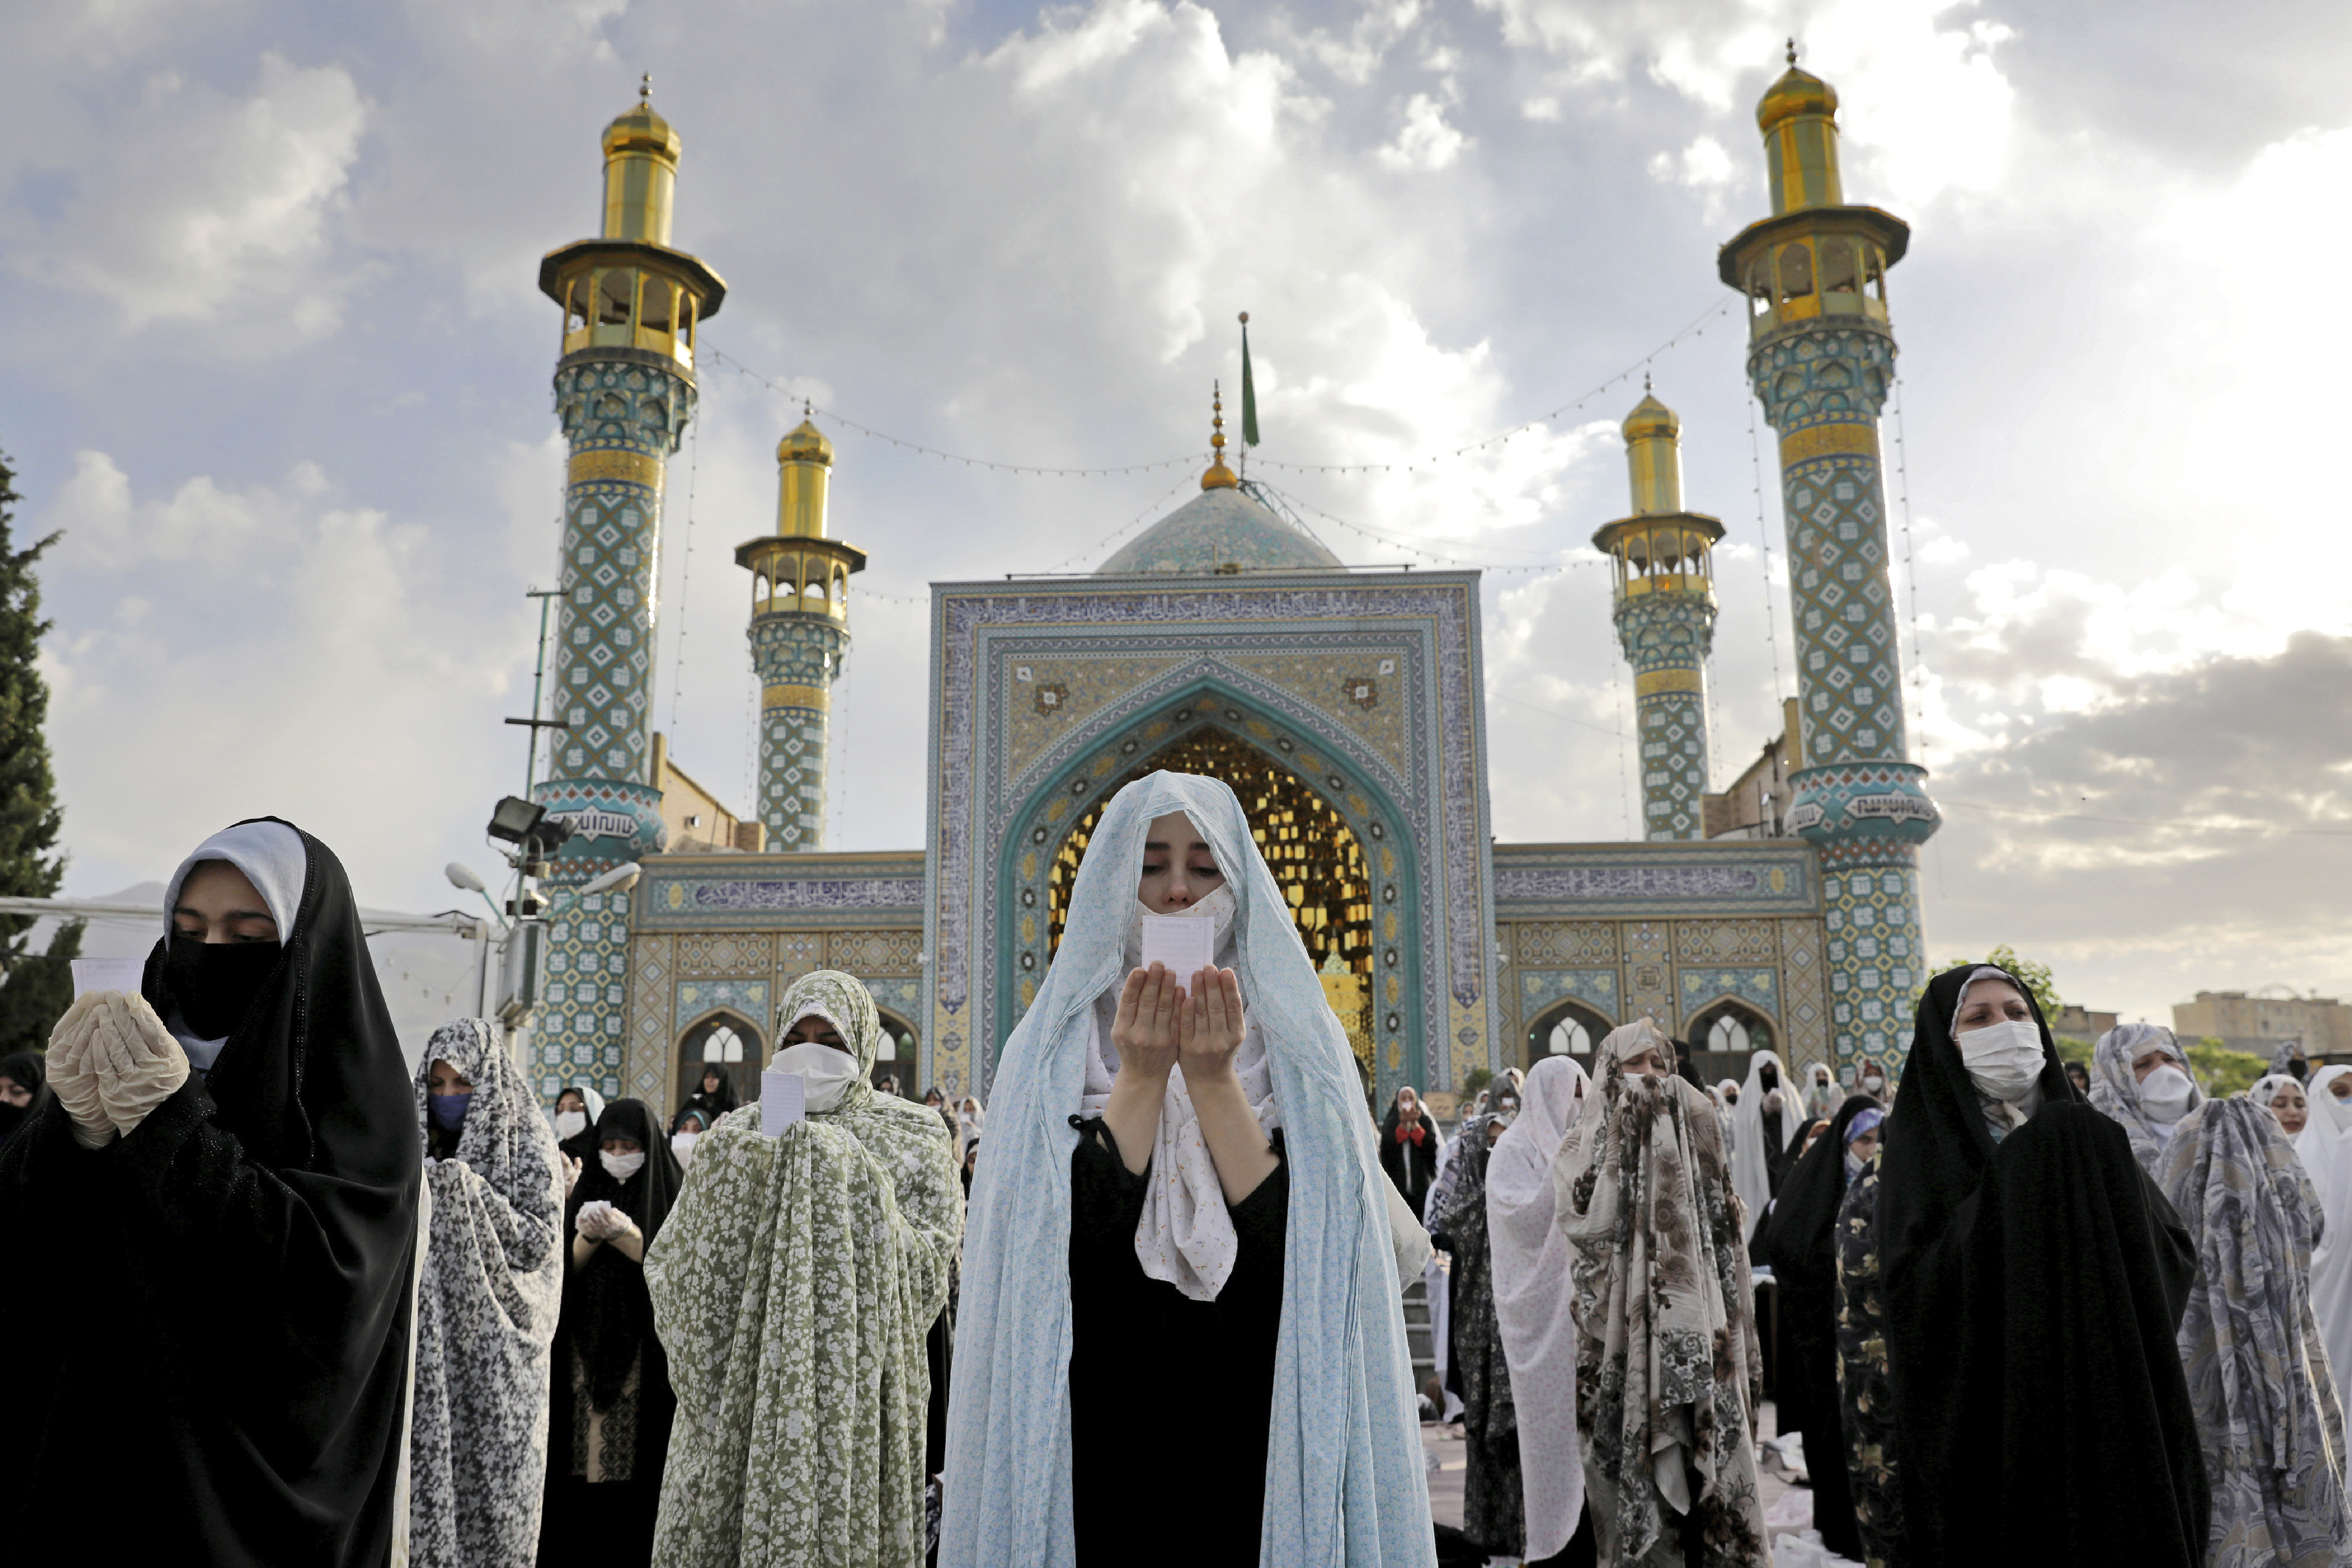 Worshippers wearing protective face masks offer Eid al-Fitr prayers outside a shrine to help prevent the spread of the coronavirus, in Tehran, Iran, Sunday, May 24, 2020. Muslims worldwide celebrate one of their biggest holidays under the long shadow of the coronavirus, with millions confined to their homes and others gripped by economic concerns during what is usually a festive time of shopping and celebration. (AP Photo/Ebrahim Noroozi)